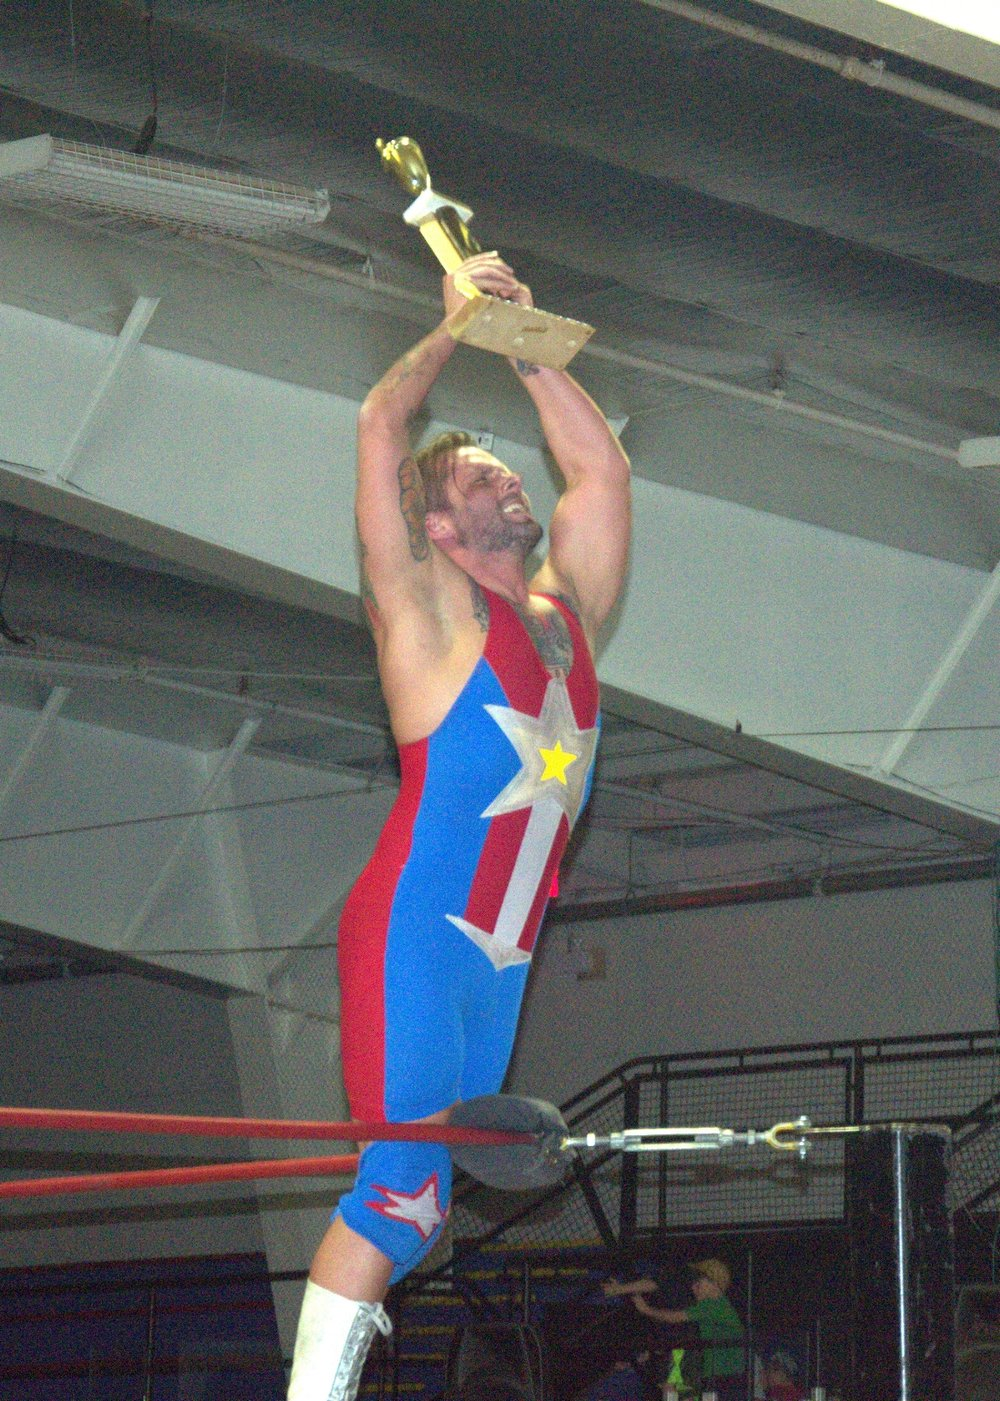 Troy Merrick, aka The American Patriot, after winning the Lobster Cup in Pictou, NS.